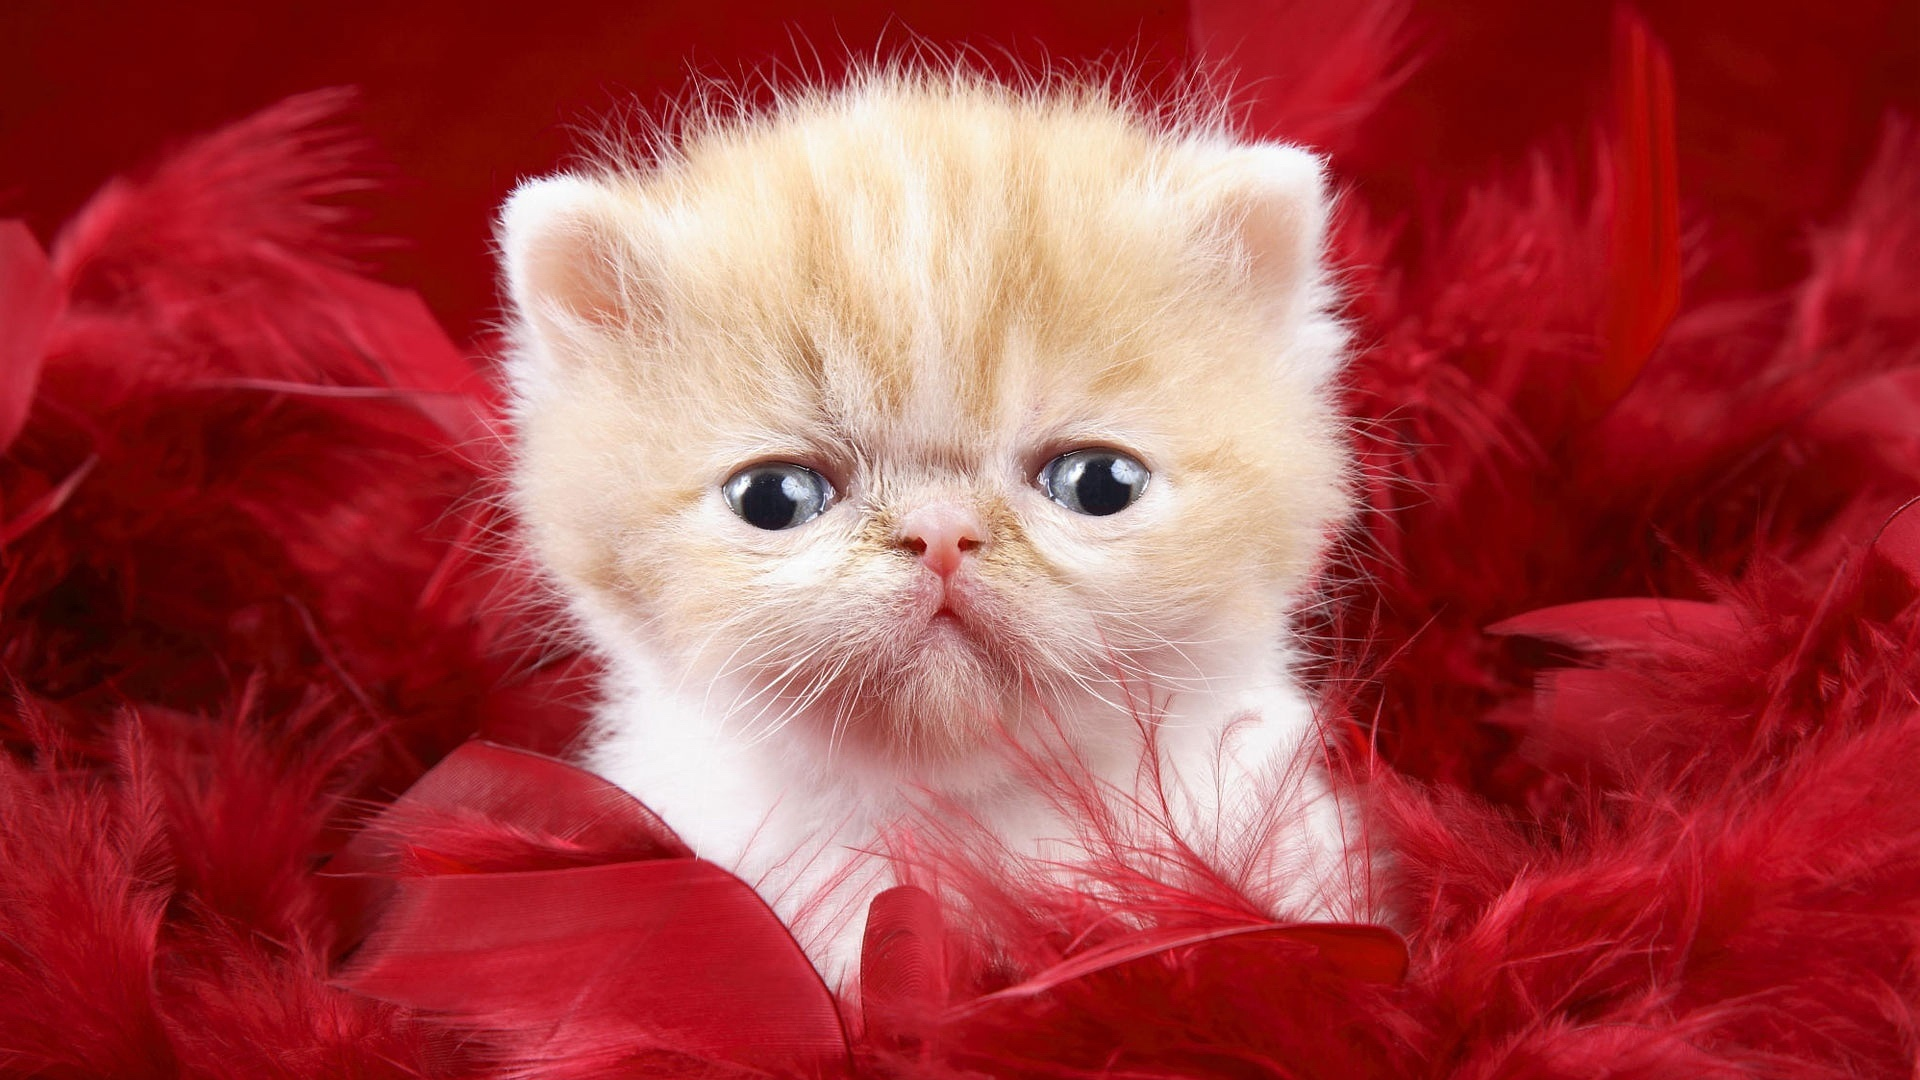 Baby Cats Wallpaper 31